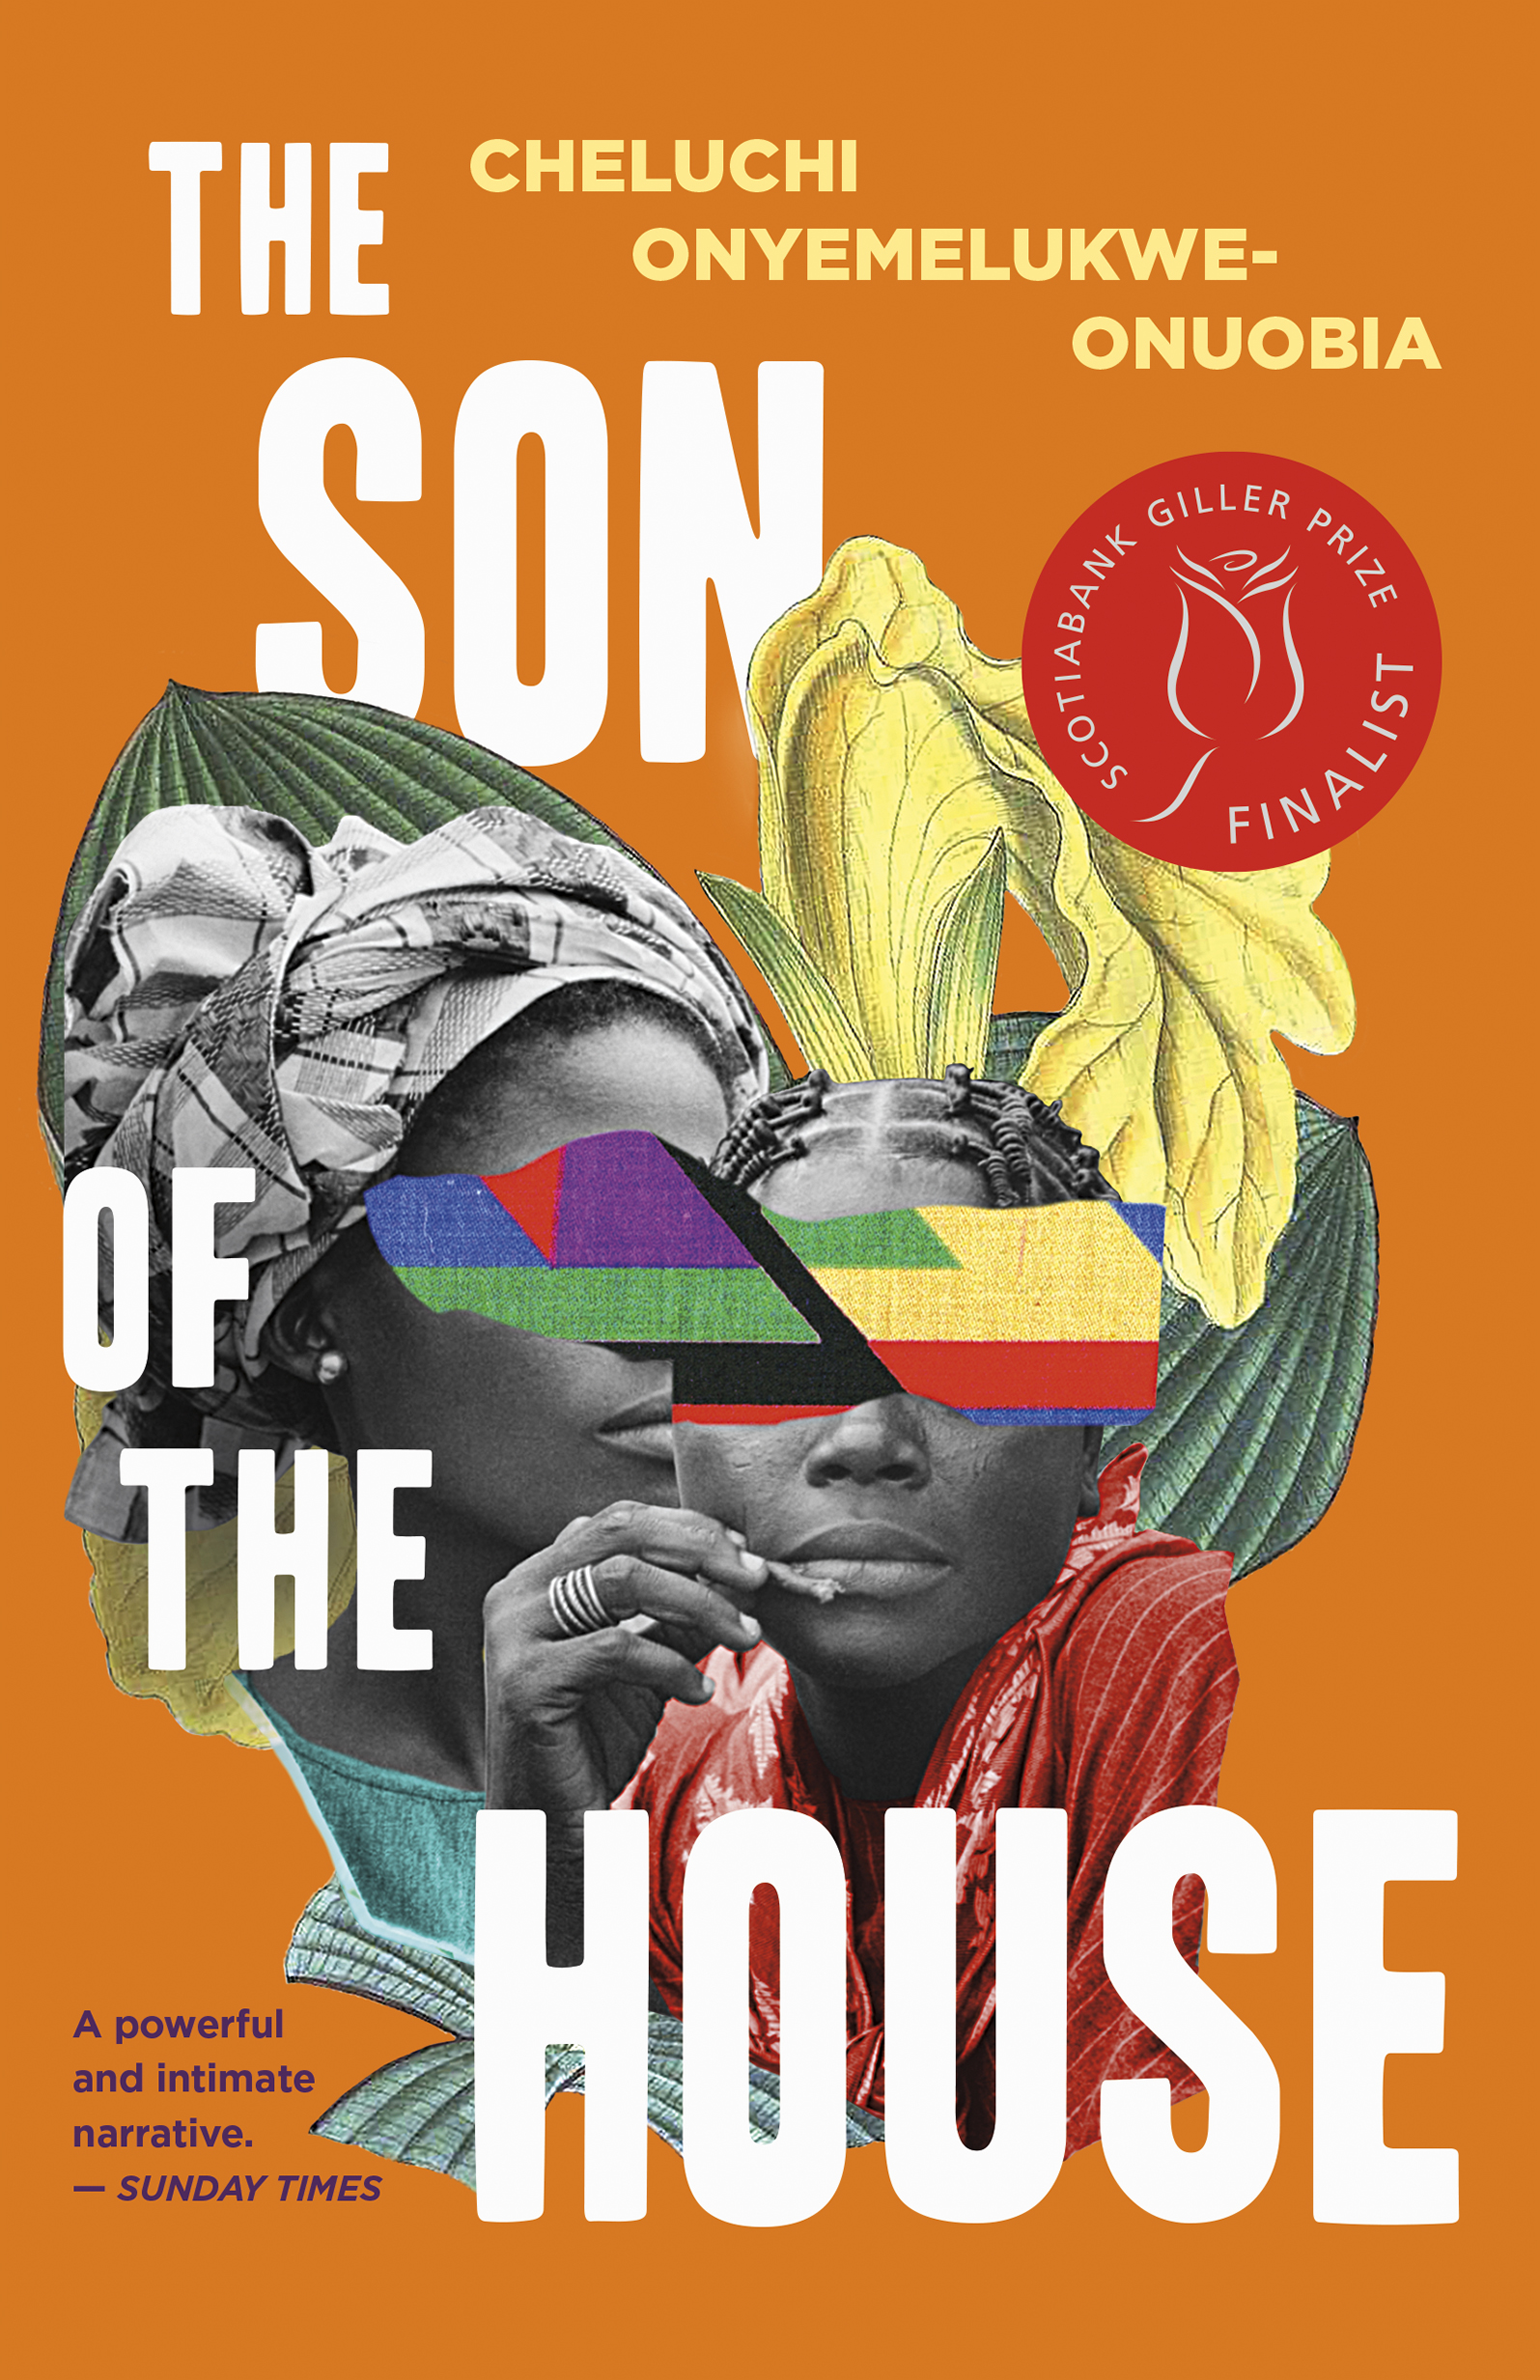 The Son of the House